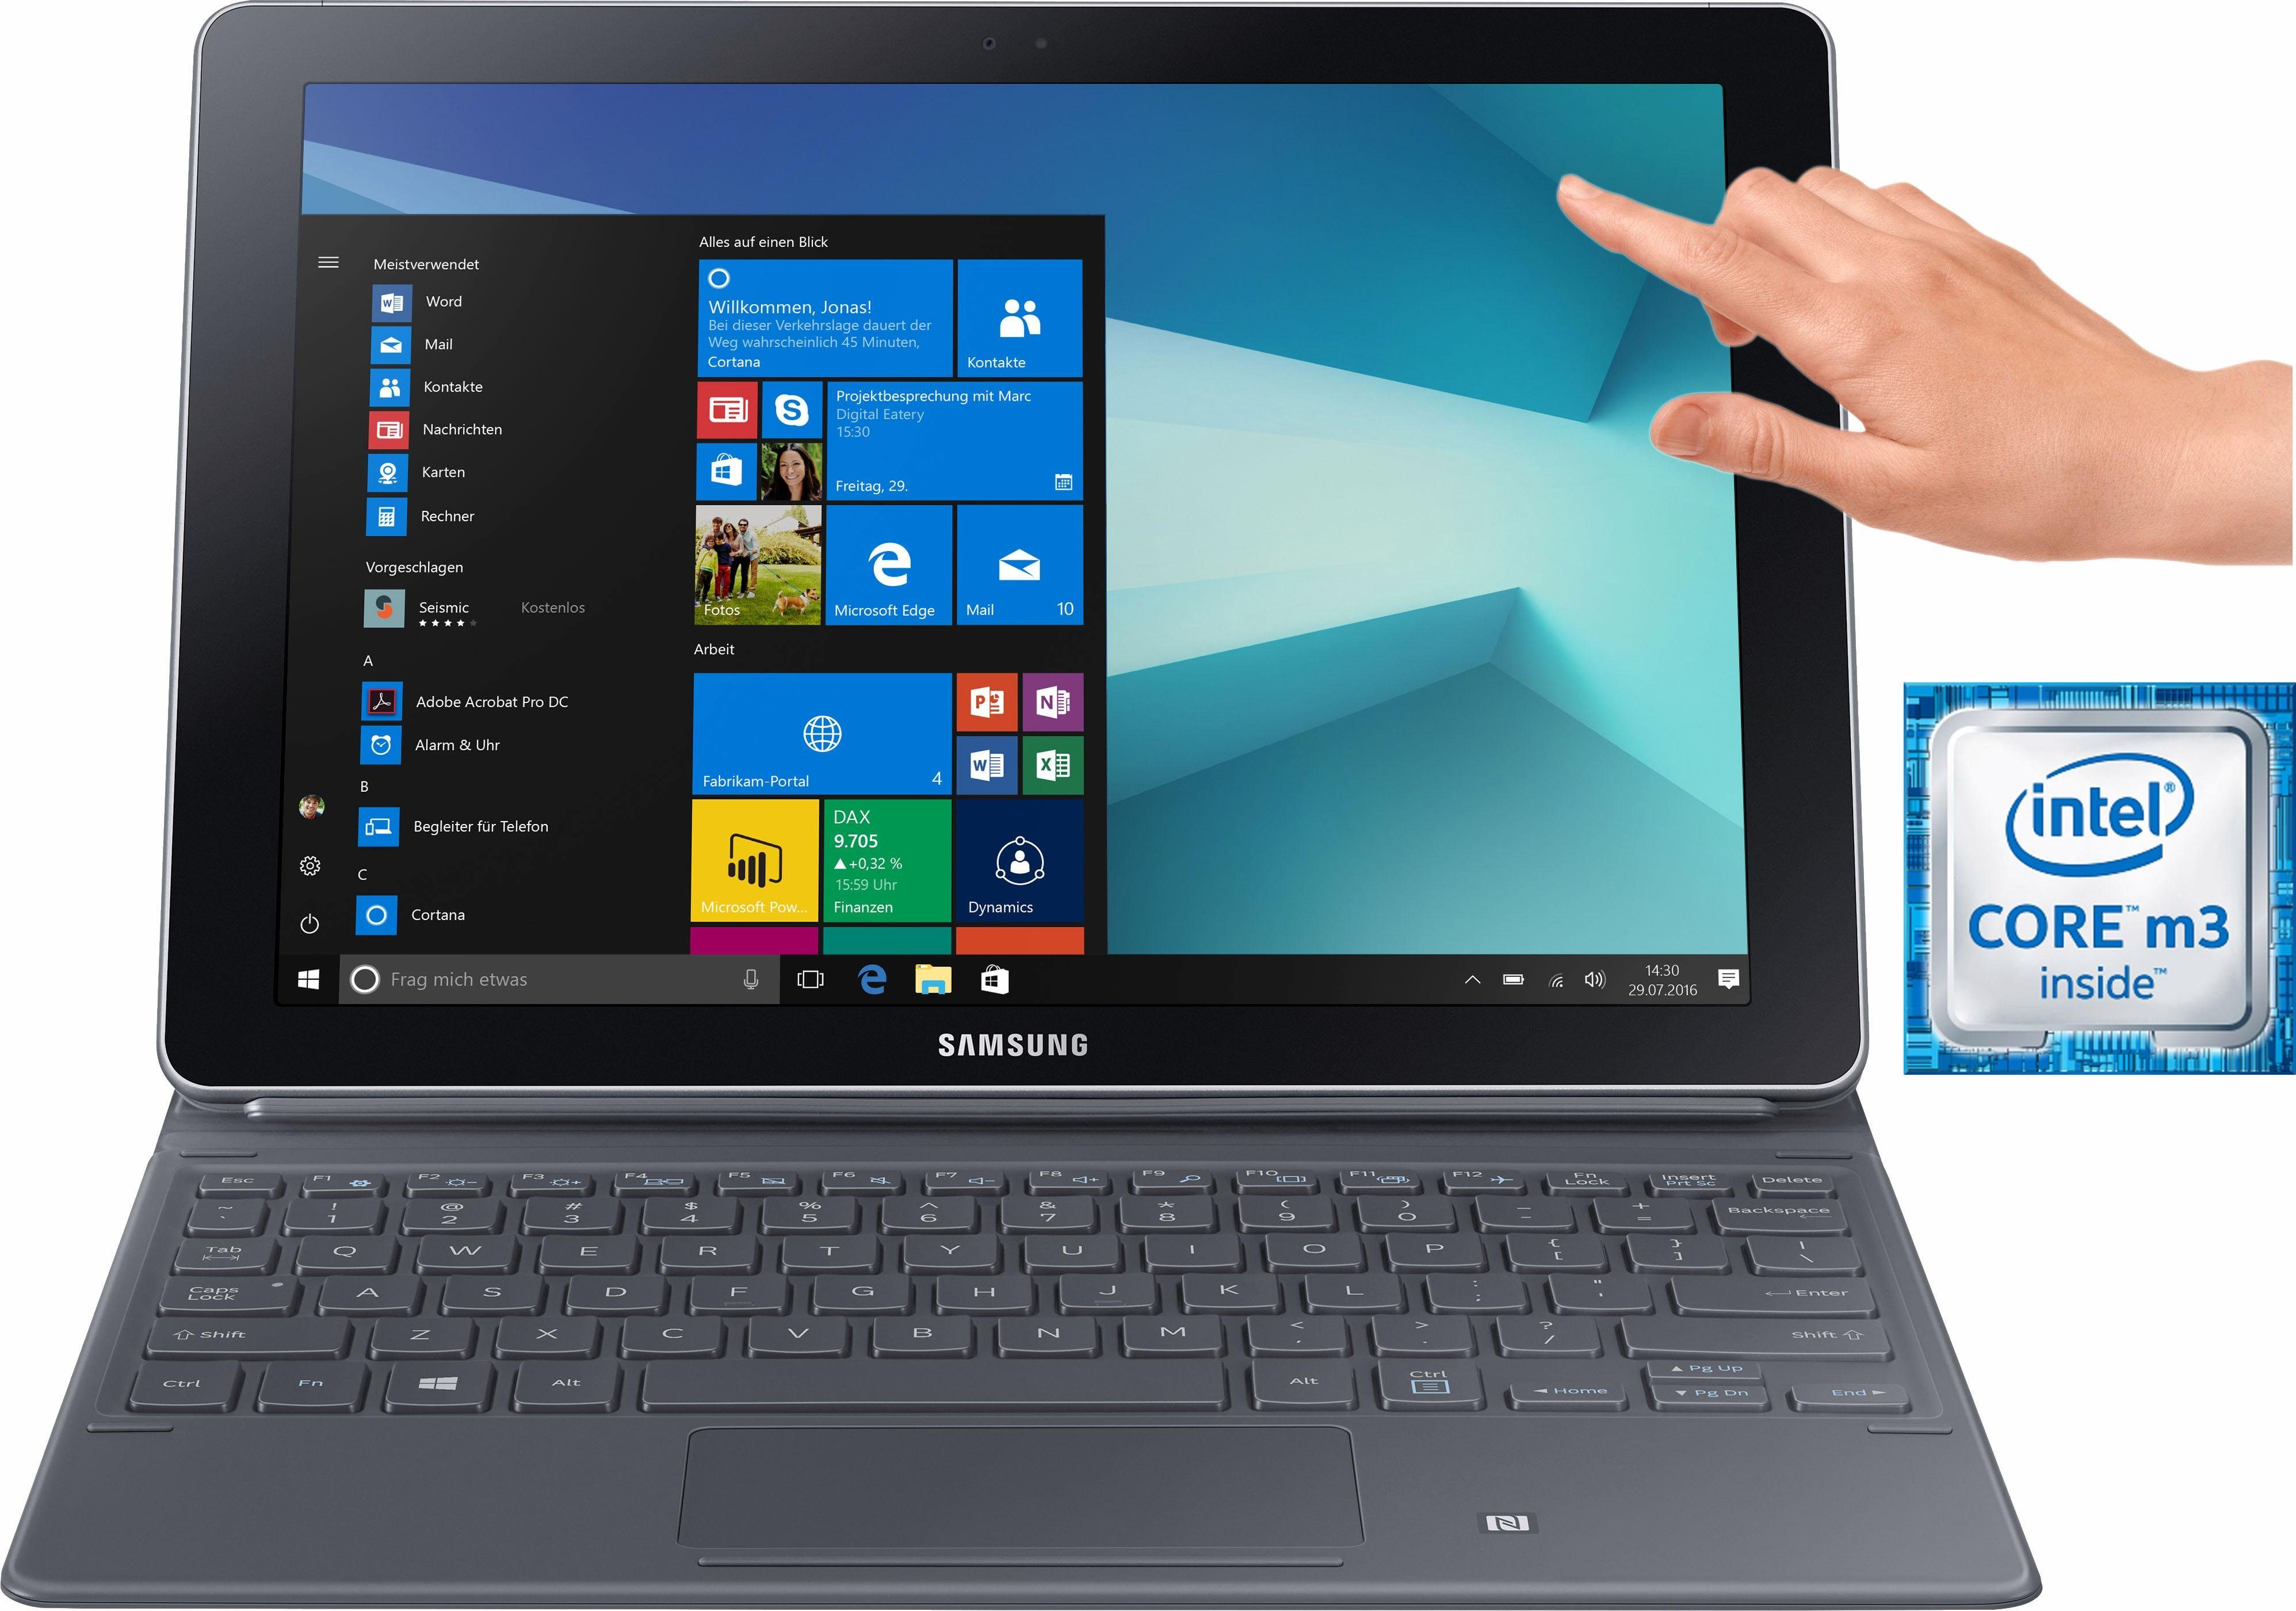 Samsung Galaxy Book 10.6 LTE Convertible Notebook (Intel Core m3, HD Graphics 615)